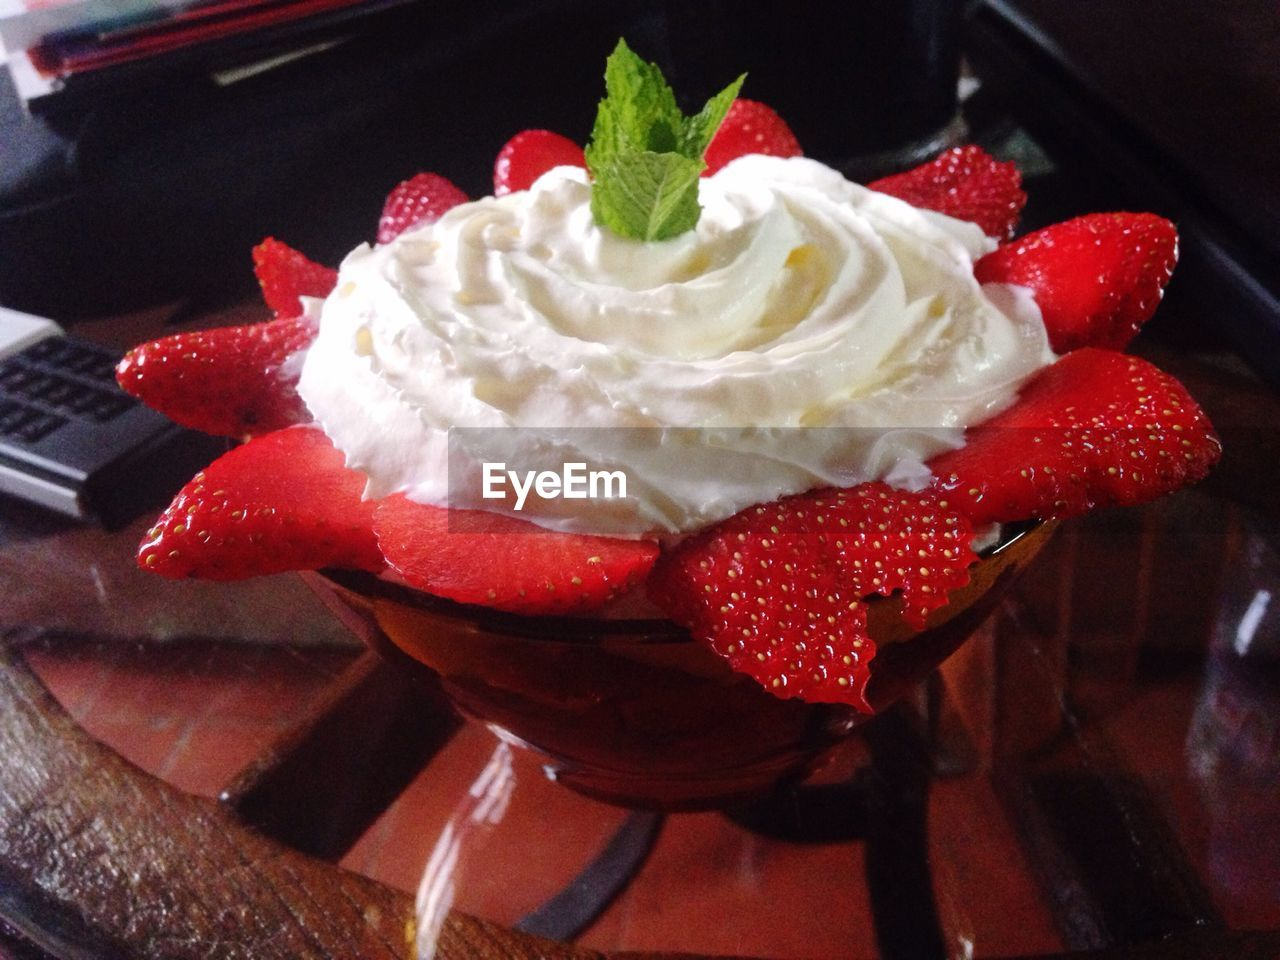 Close-up of strawberries topped with whipped cream in bowl on table